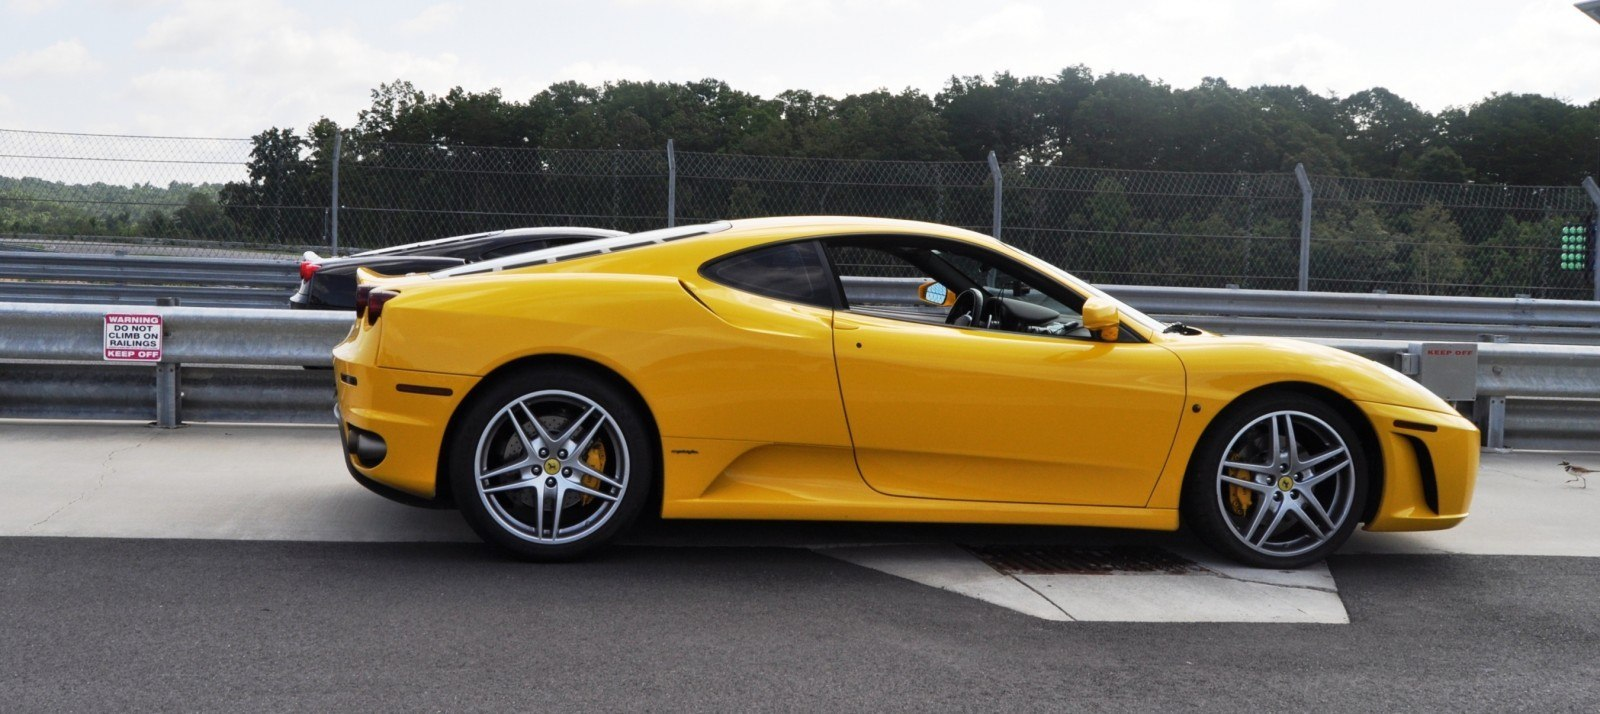 Beating the Supercar Paradox - 2007 Ferrari F430 at Velocity Motorsports Supercar Track Drive 2